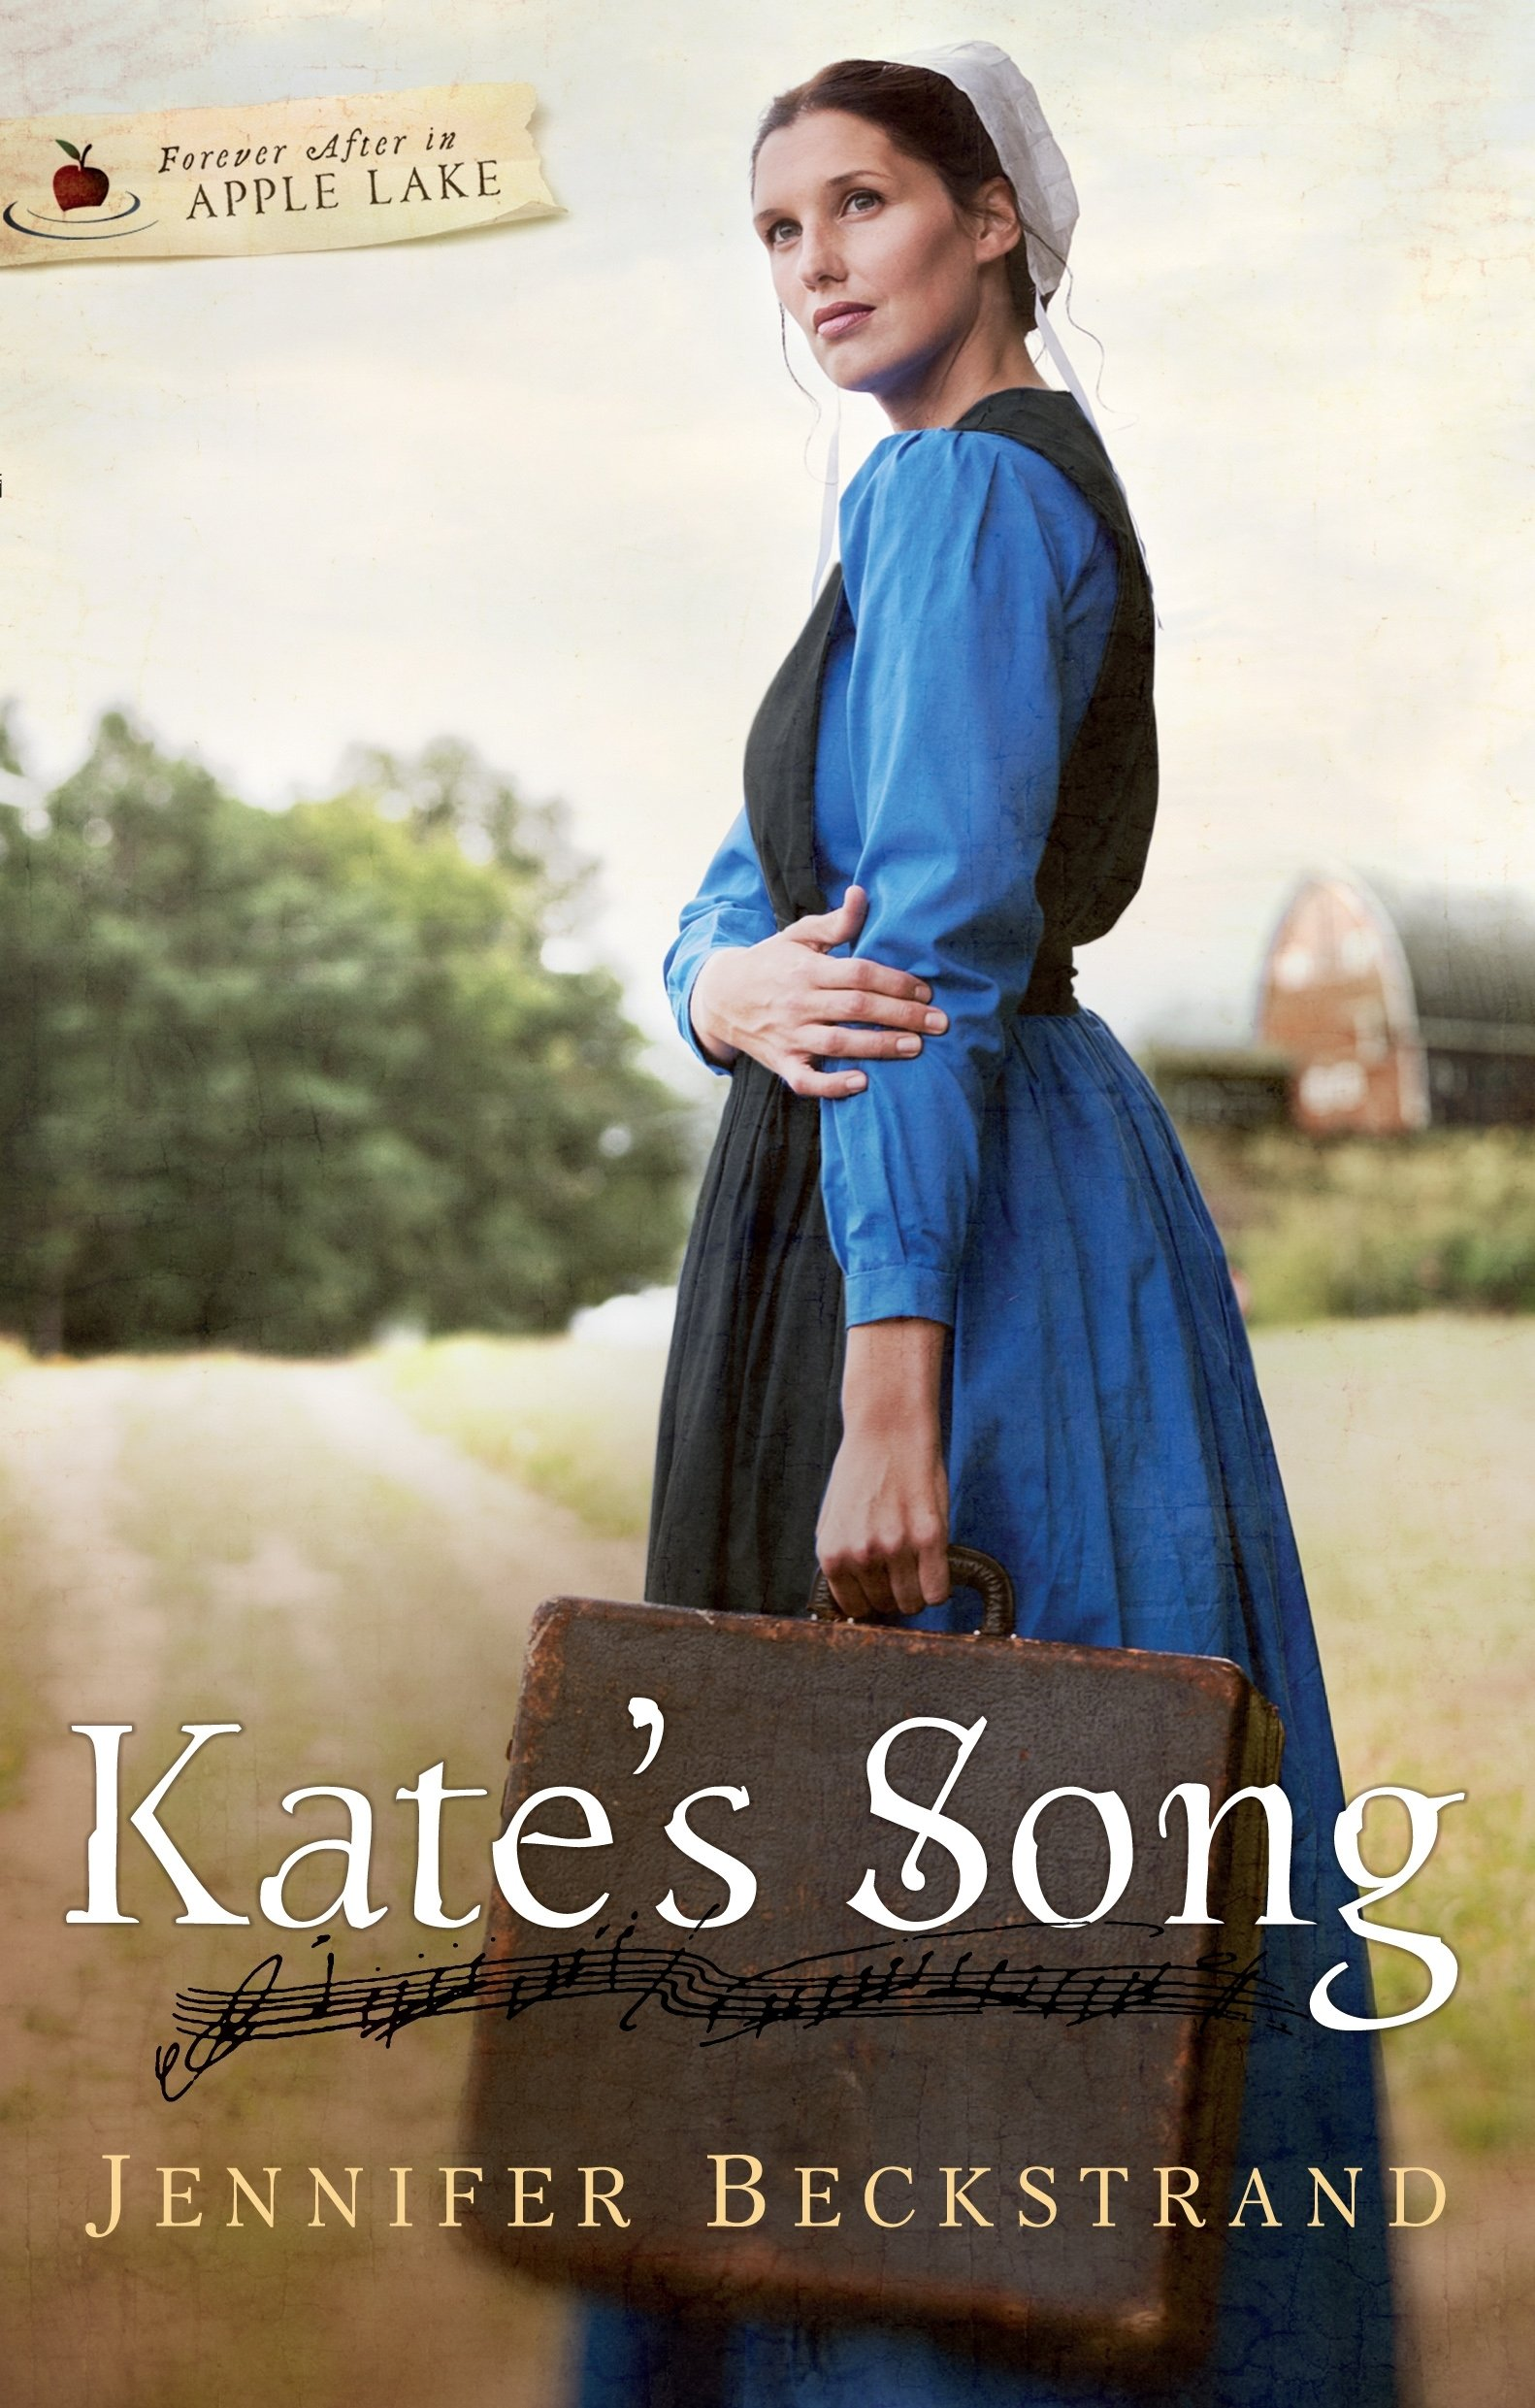 Kate's Song: Forever in Apple Lake (Forever After in Apple Lake) PDF